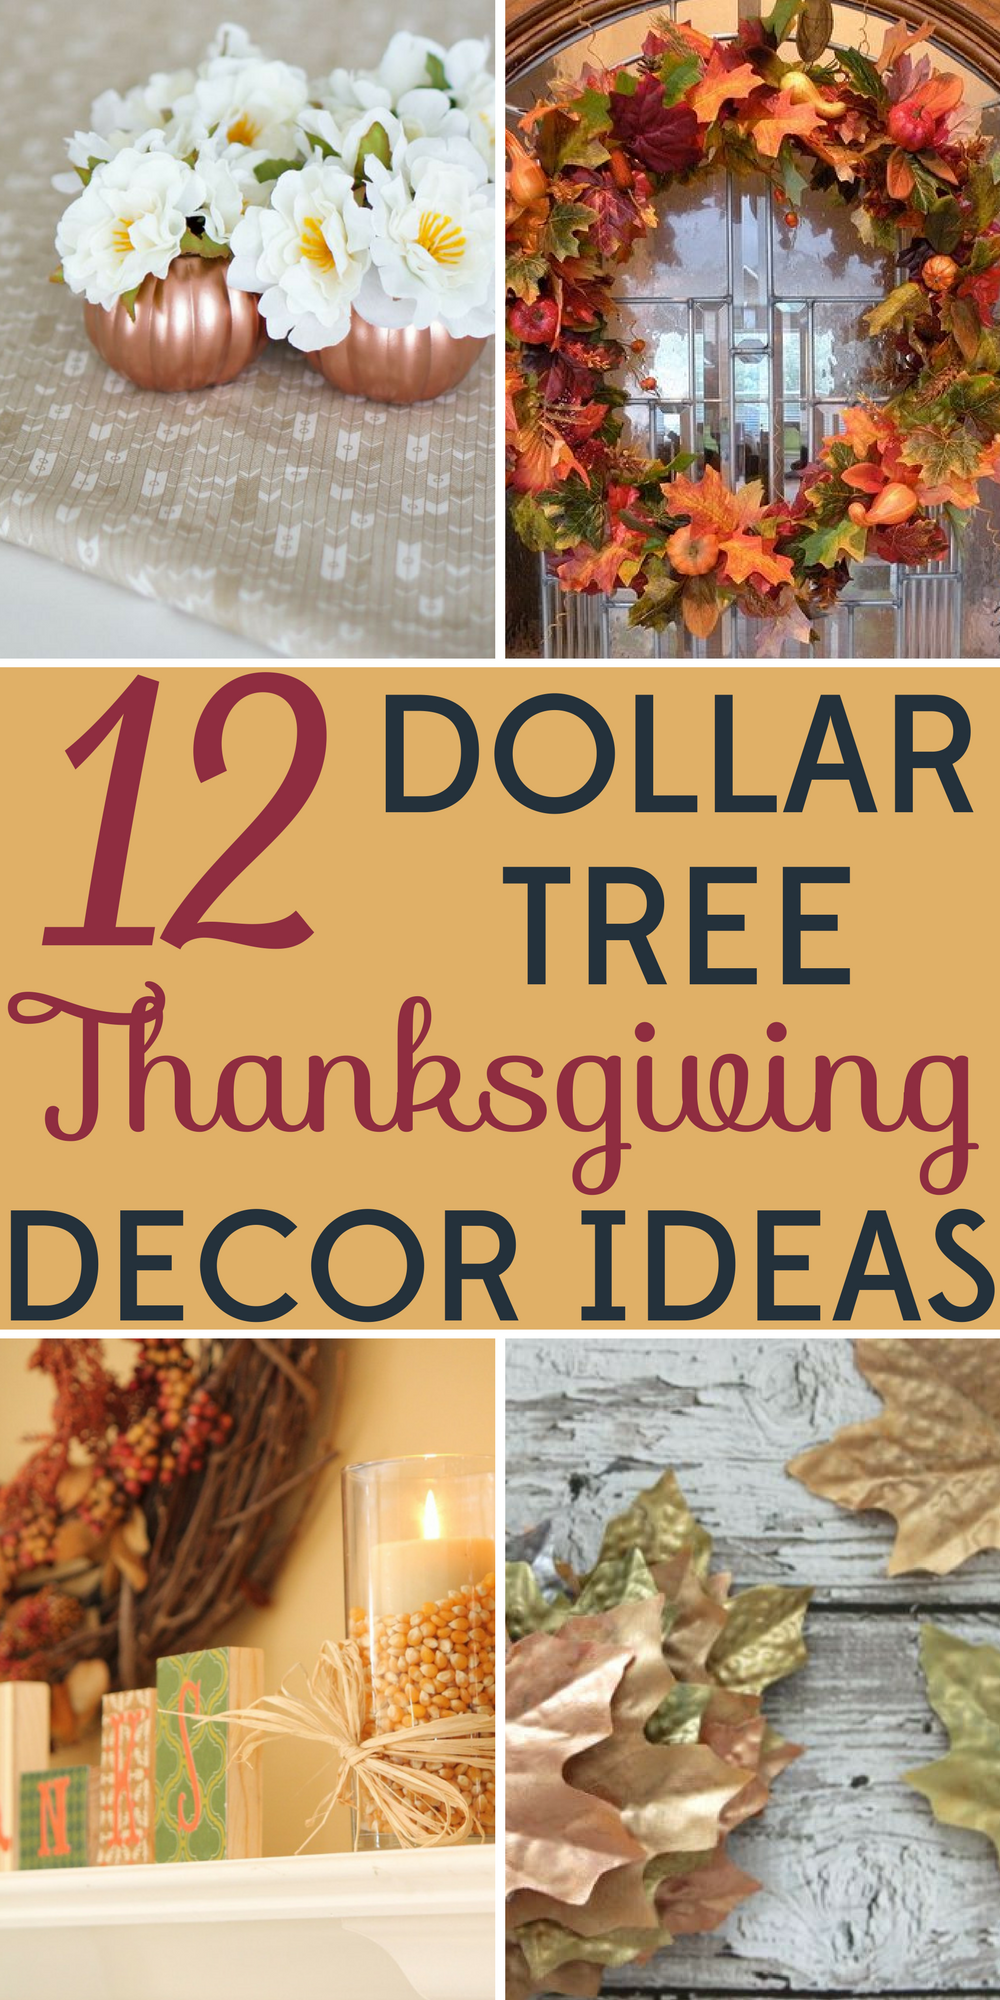 Beautiful Thanksgiving Decor Ideas Part - 7: Iu0027m Really Excited To Decorate My House Based On The Season/Holiday. And  Cheap.) Cheap Is Good.